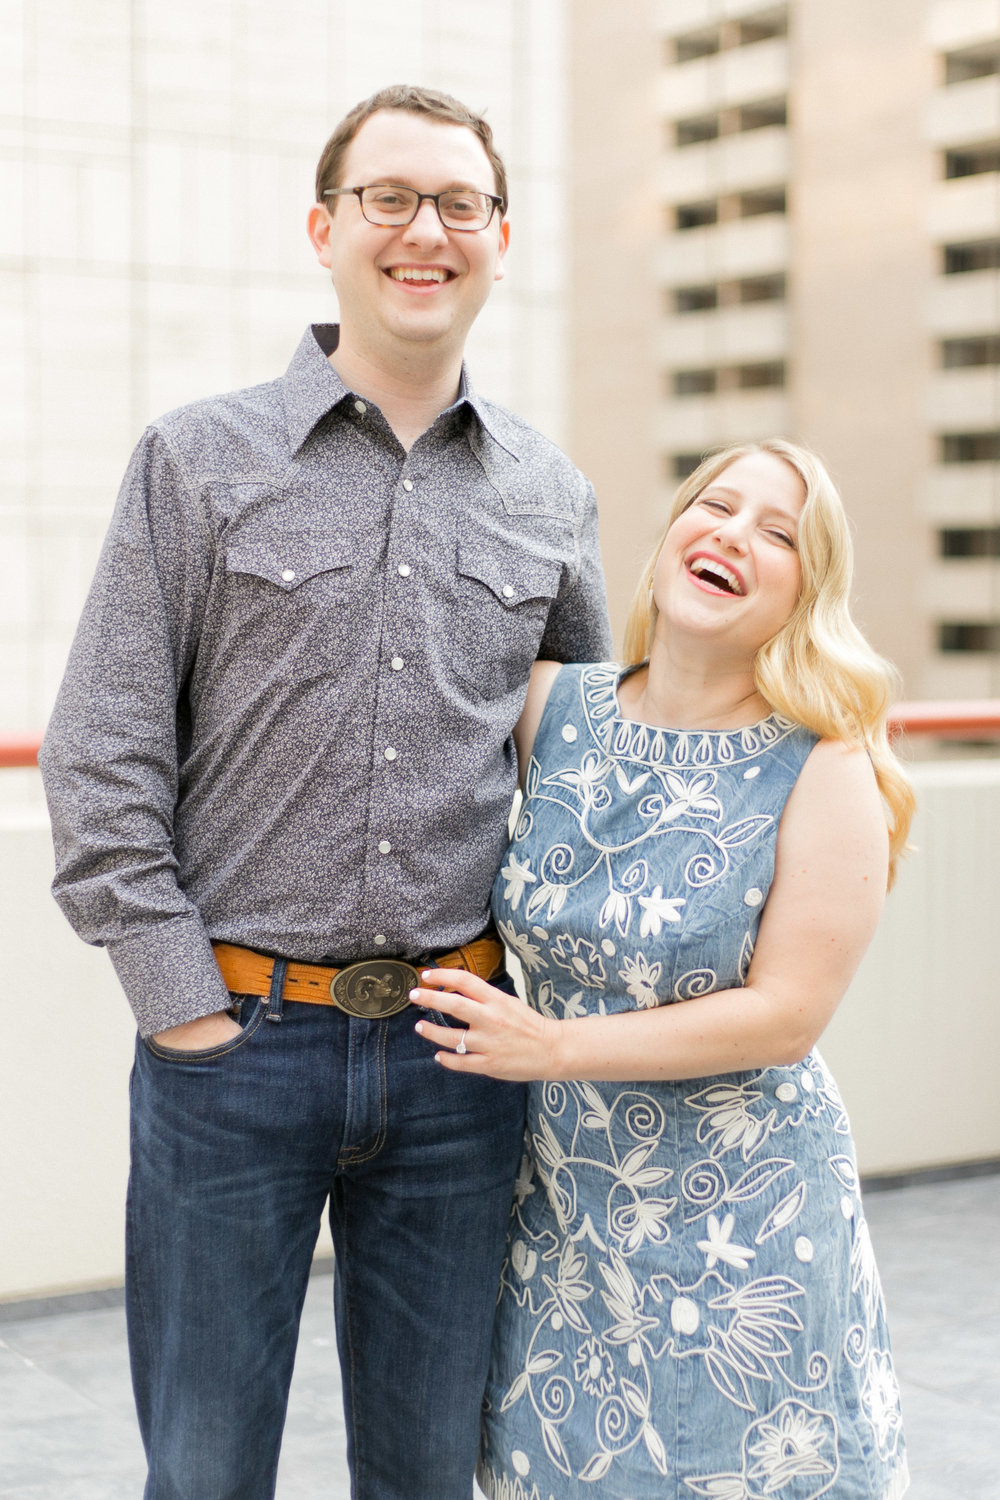 Engagement and Rehearsal Dinner Photos Dallas | Chelsea Macor Photography Bellevue WA-2.jpg